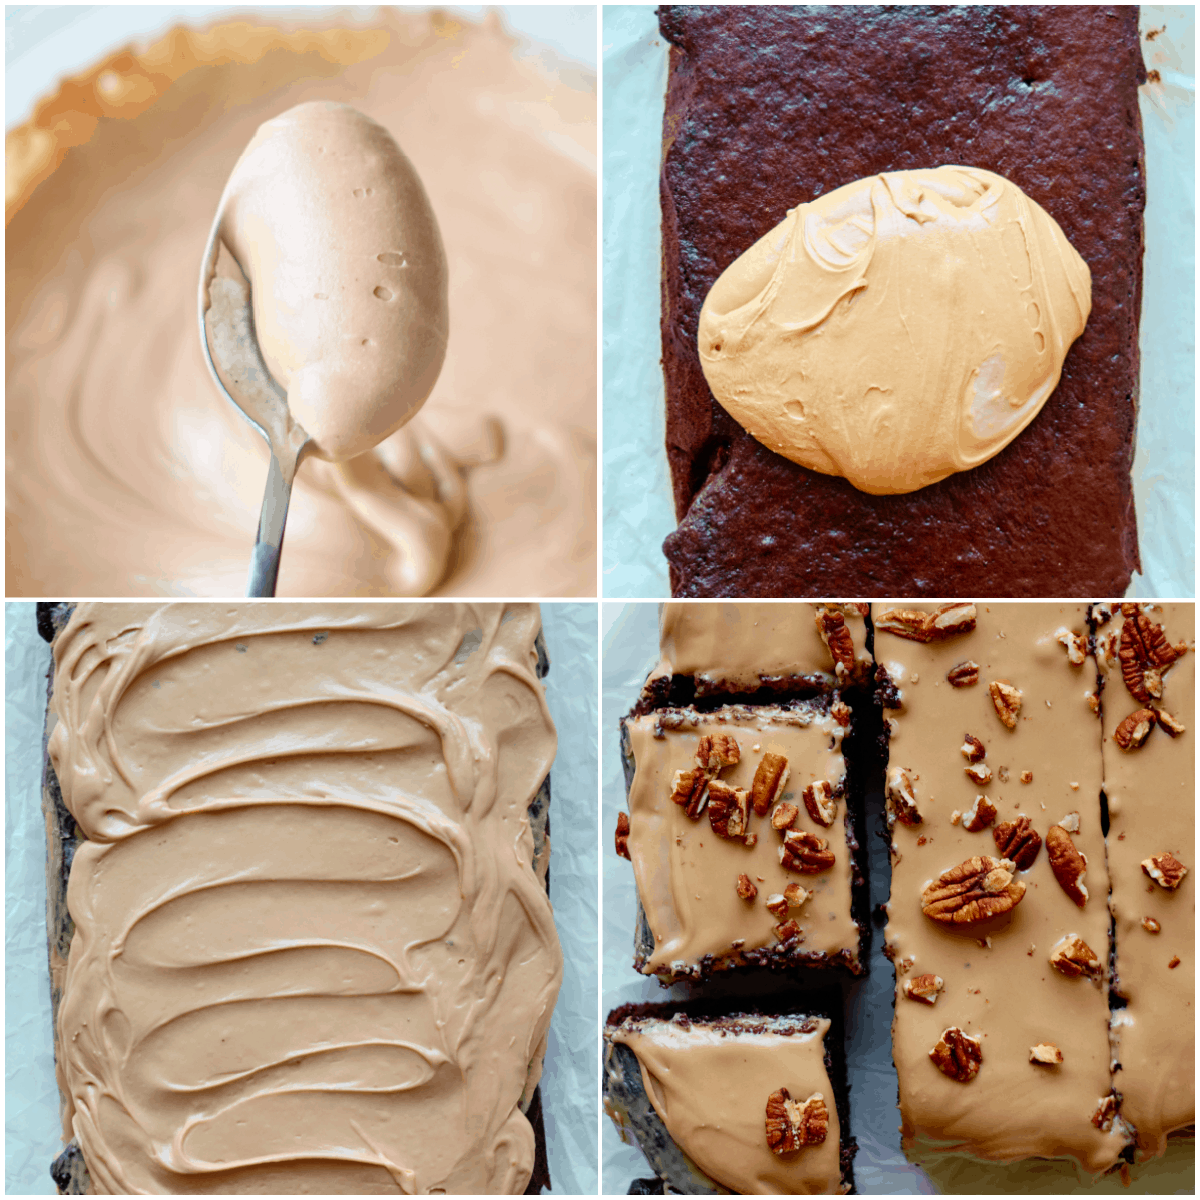 image collage showing the final steps for making Texas Sheet Cake